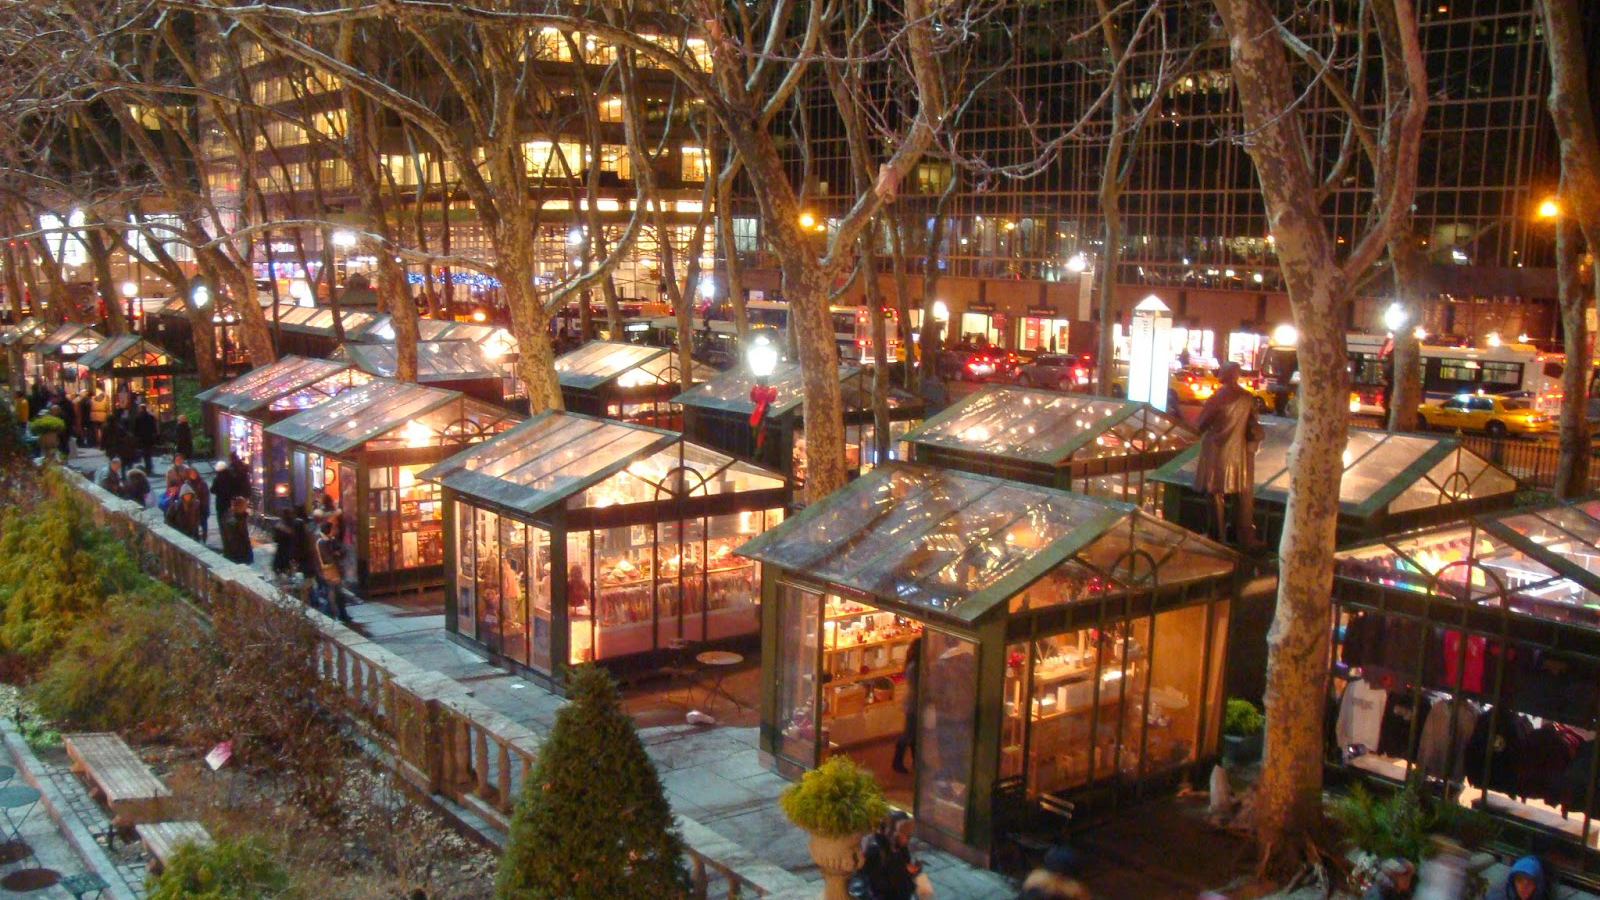 Winter Village Holiday shops inside Bryant Park in NYC